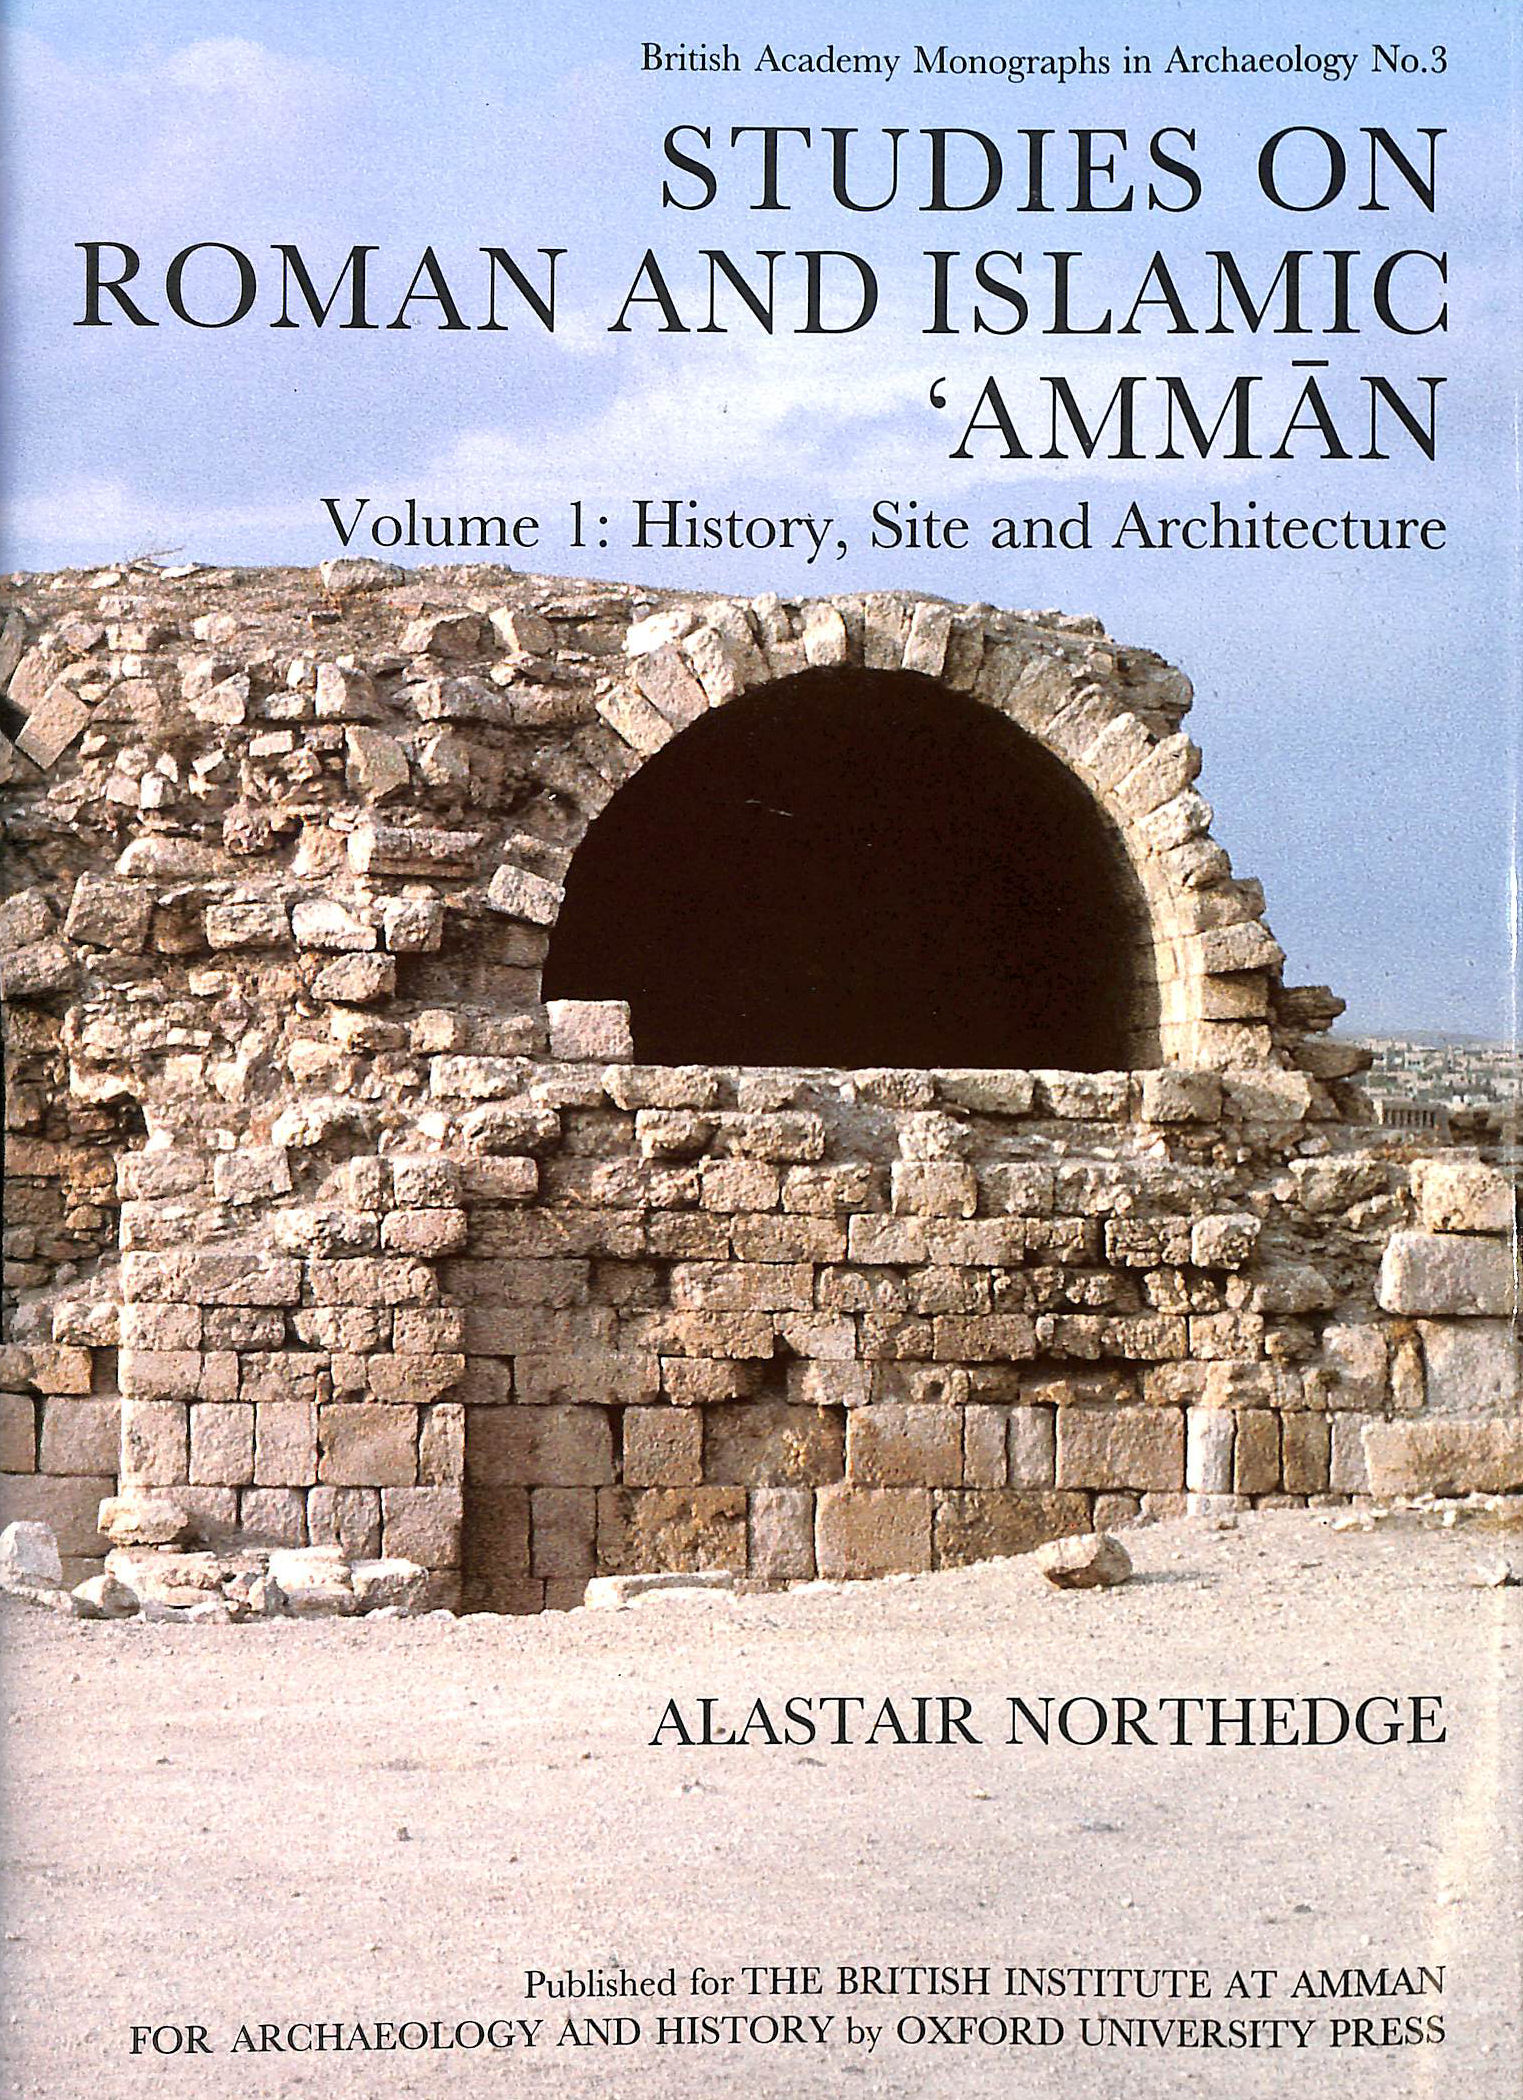 Image for Studies on Roman and Islamic Amman Volume 1 History, Site and Architecture